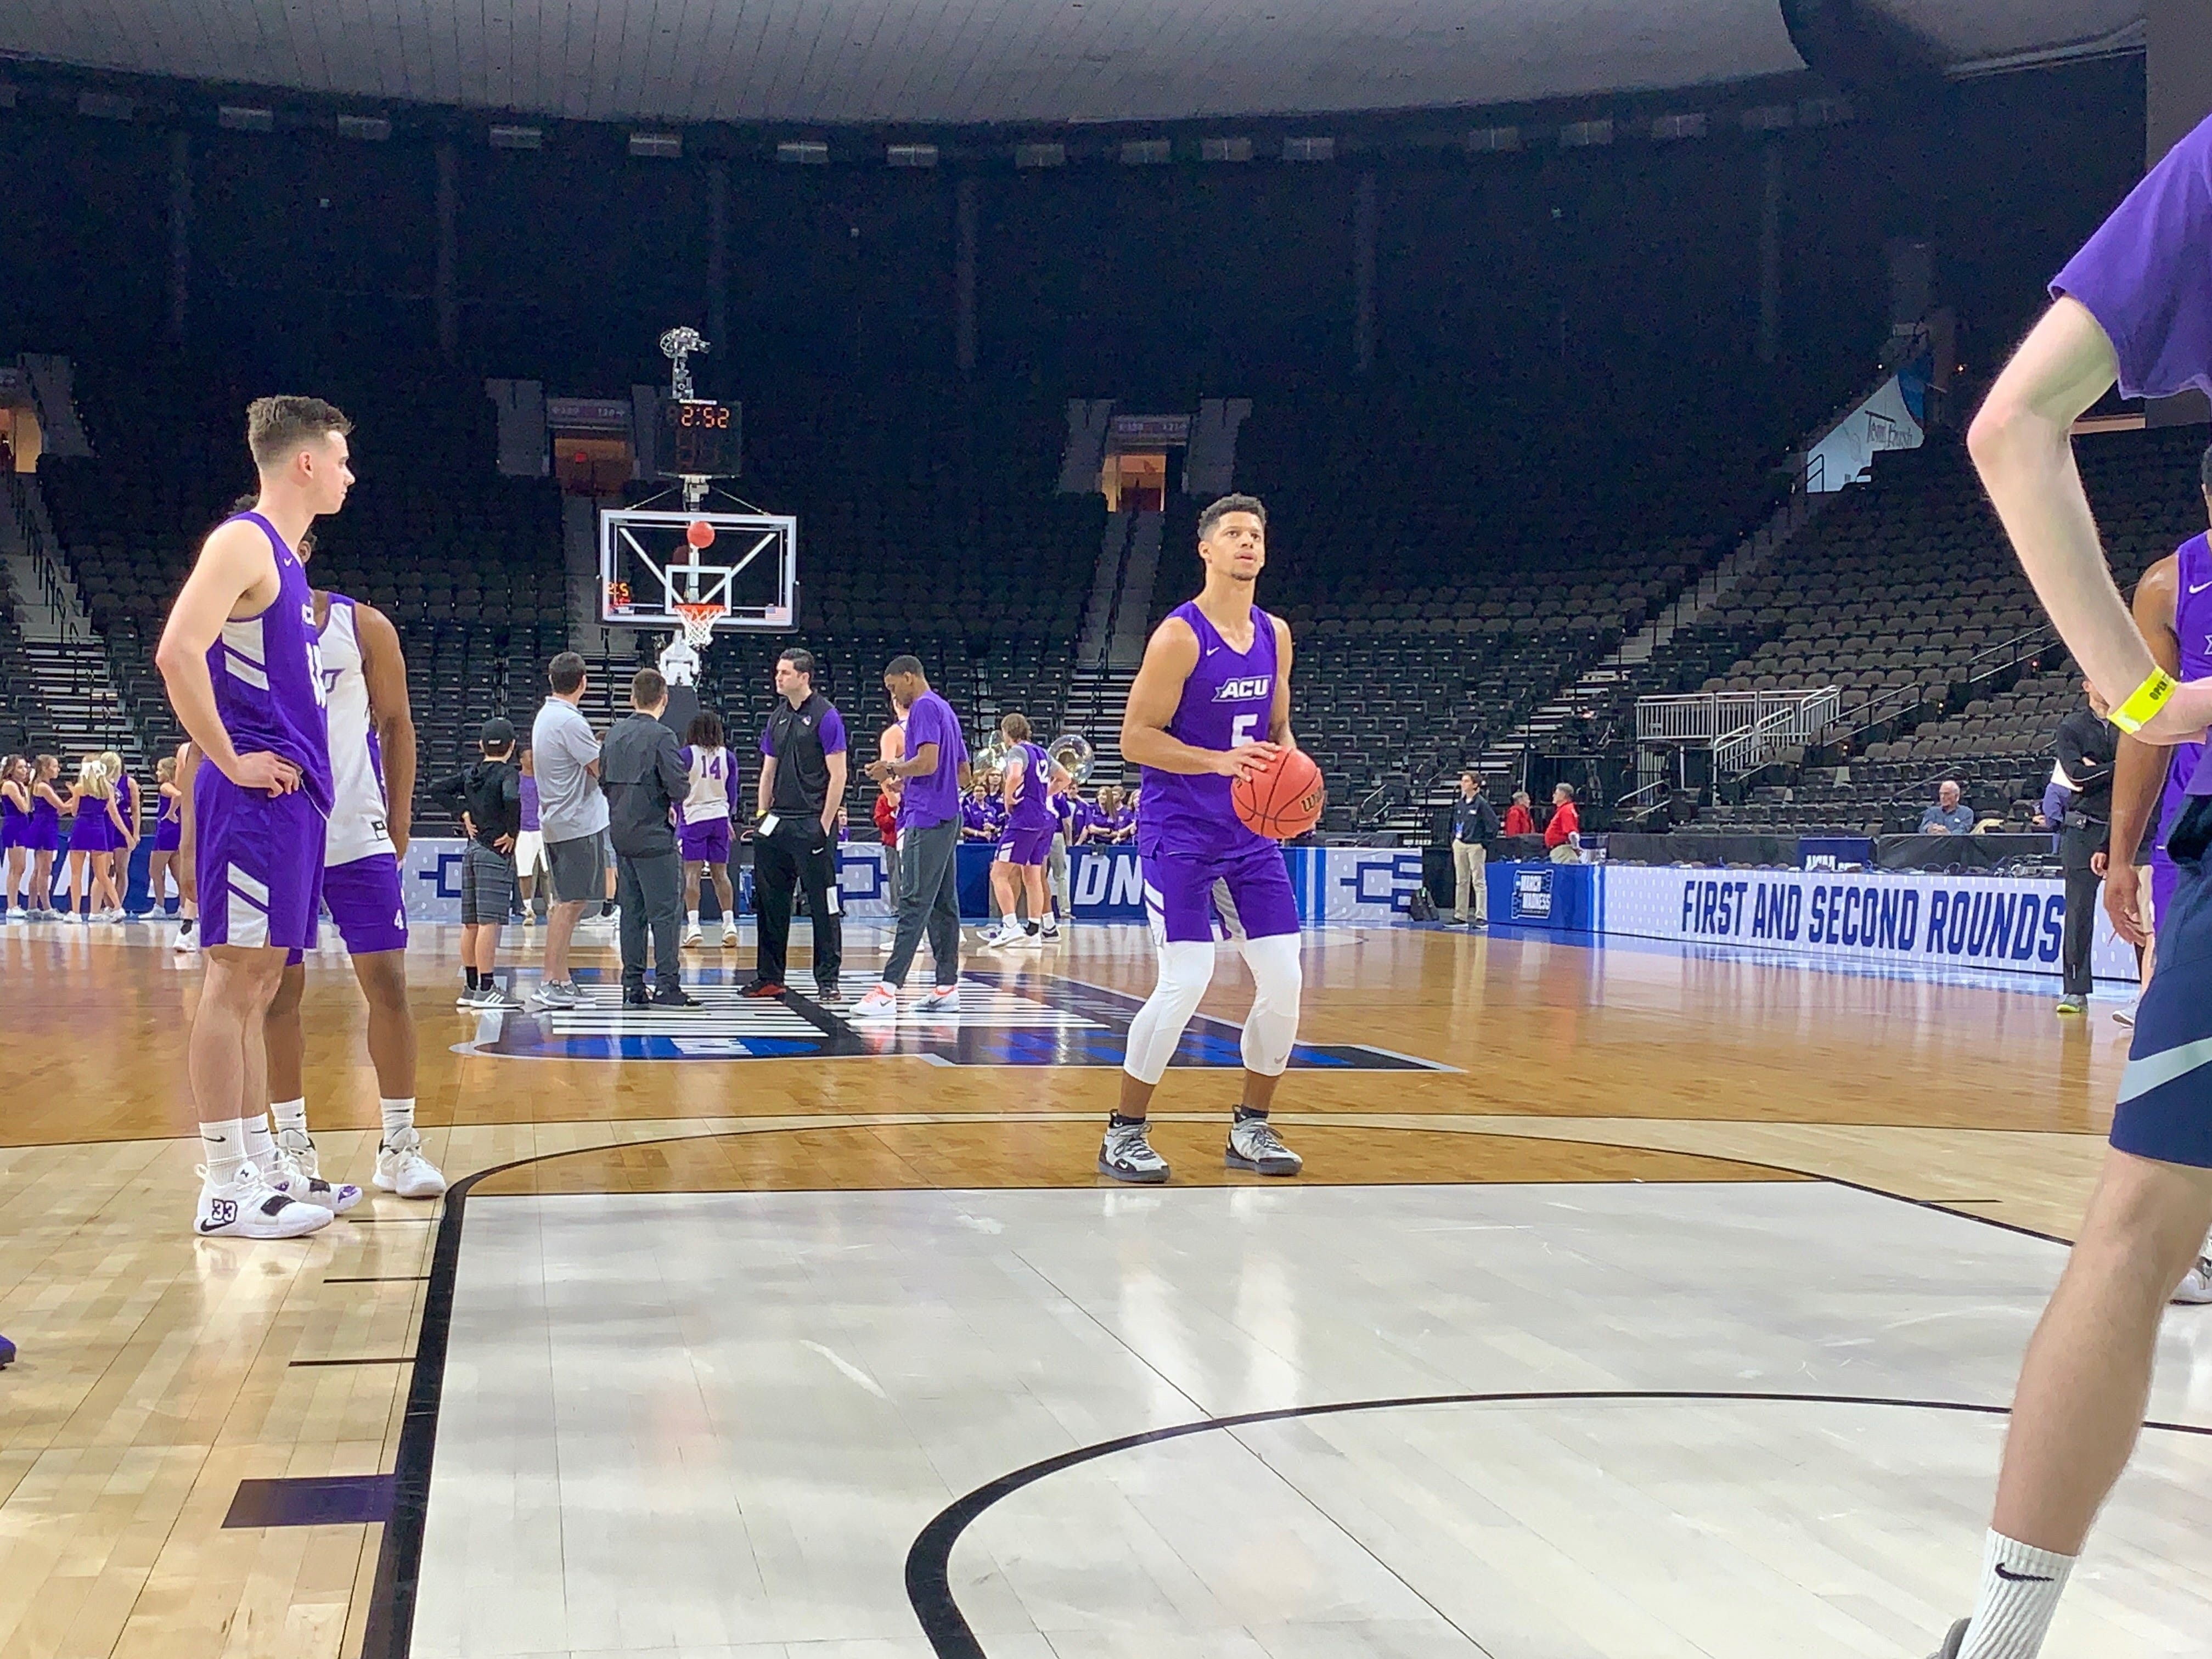 Abilene Christian's Payten Ricks (5) sets to take a free throw during practice at VyStar Veterans Memorial Arena in Jacksonville on Wednesday, March 20. ACU plays Kentucky in the NCAA Tournament first round on Thursday night.